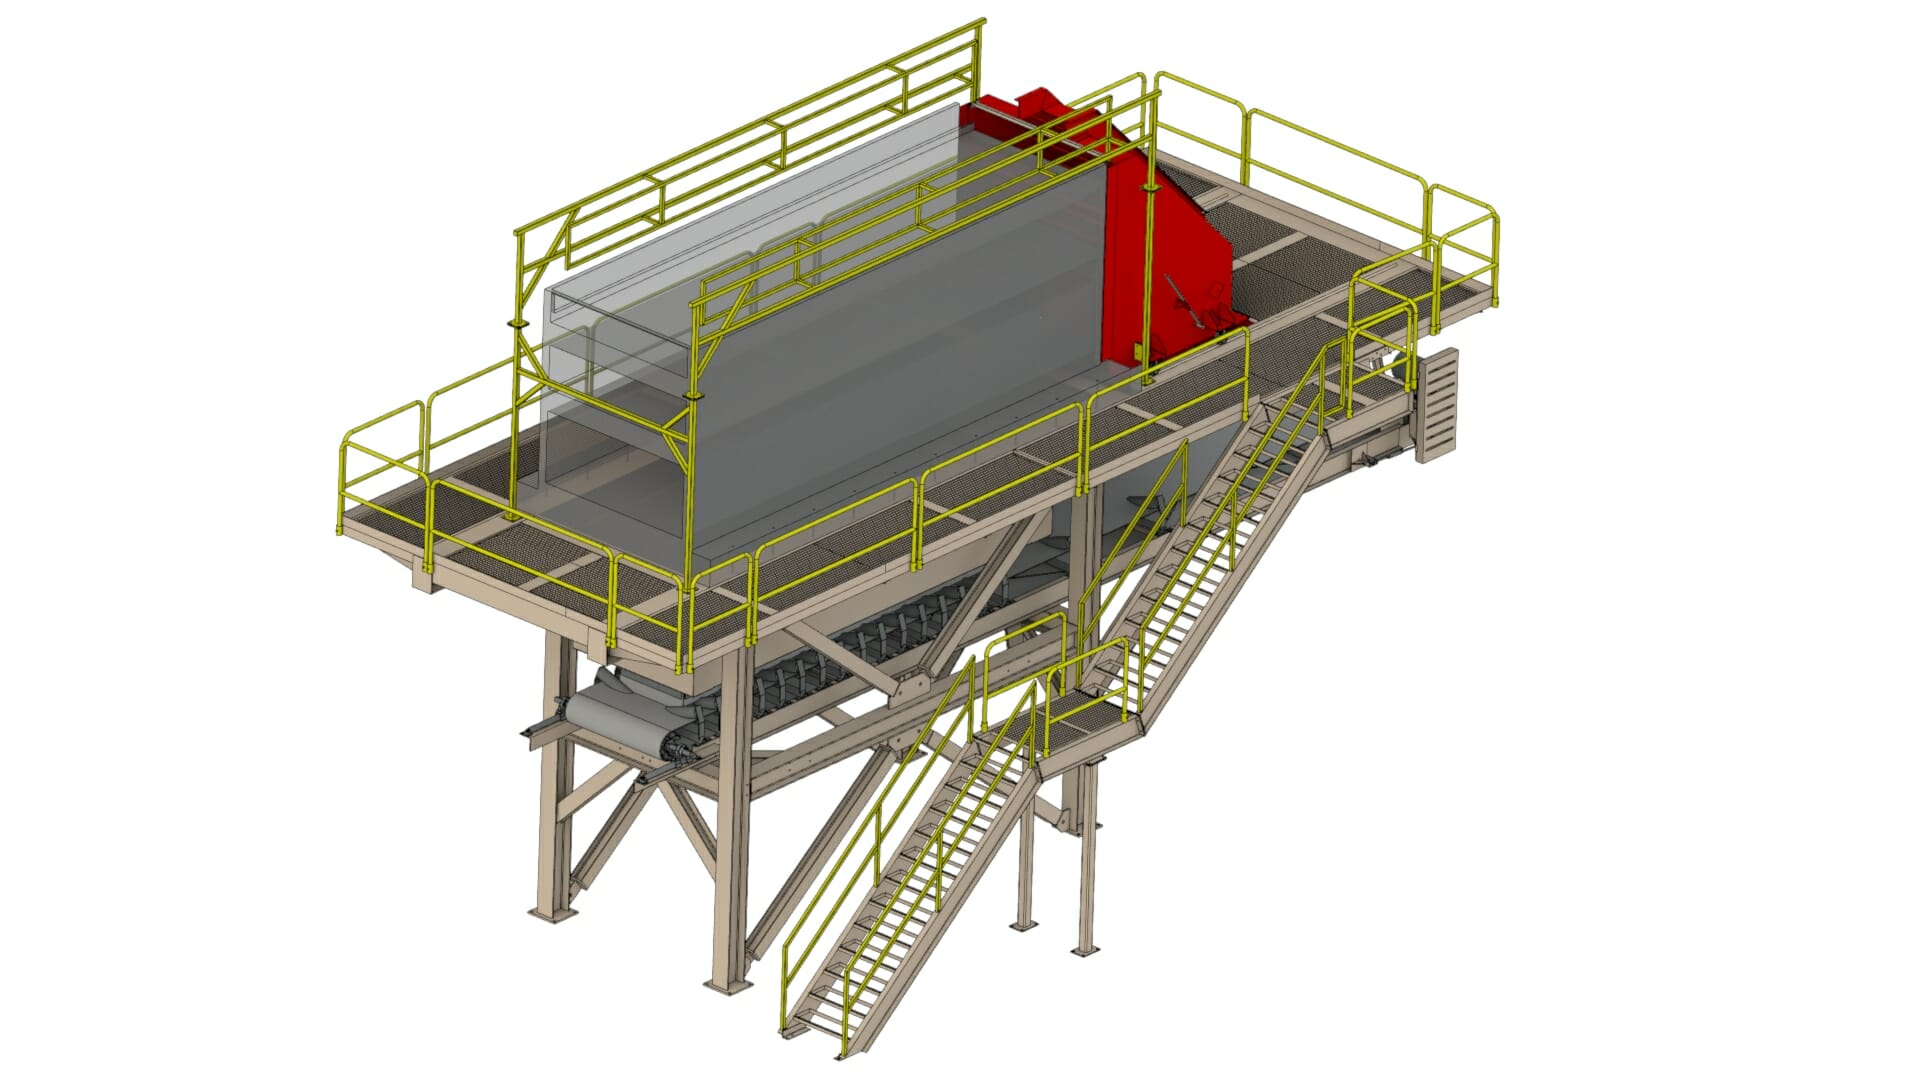 Solidworks - Agricultural & Heavy Equipment Design - Screen deck stand for sand mining